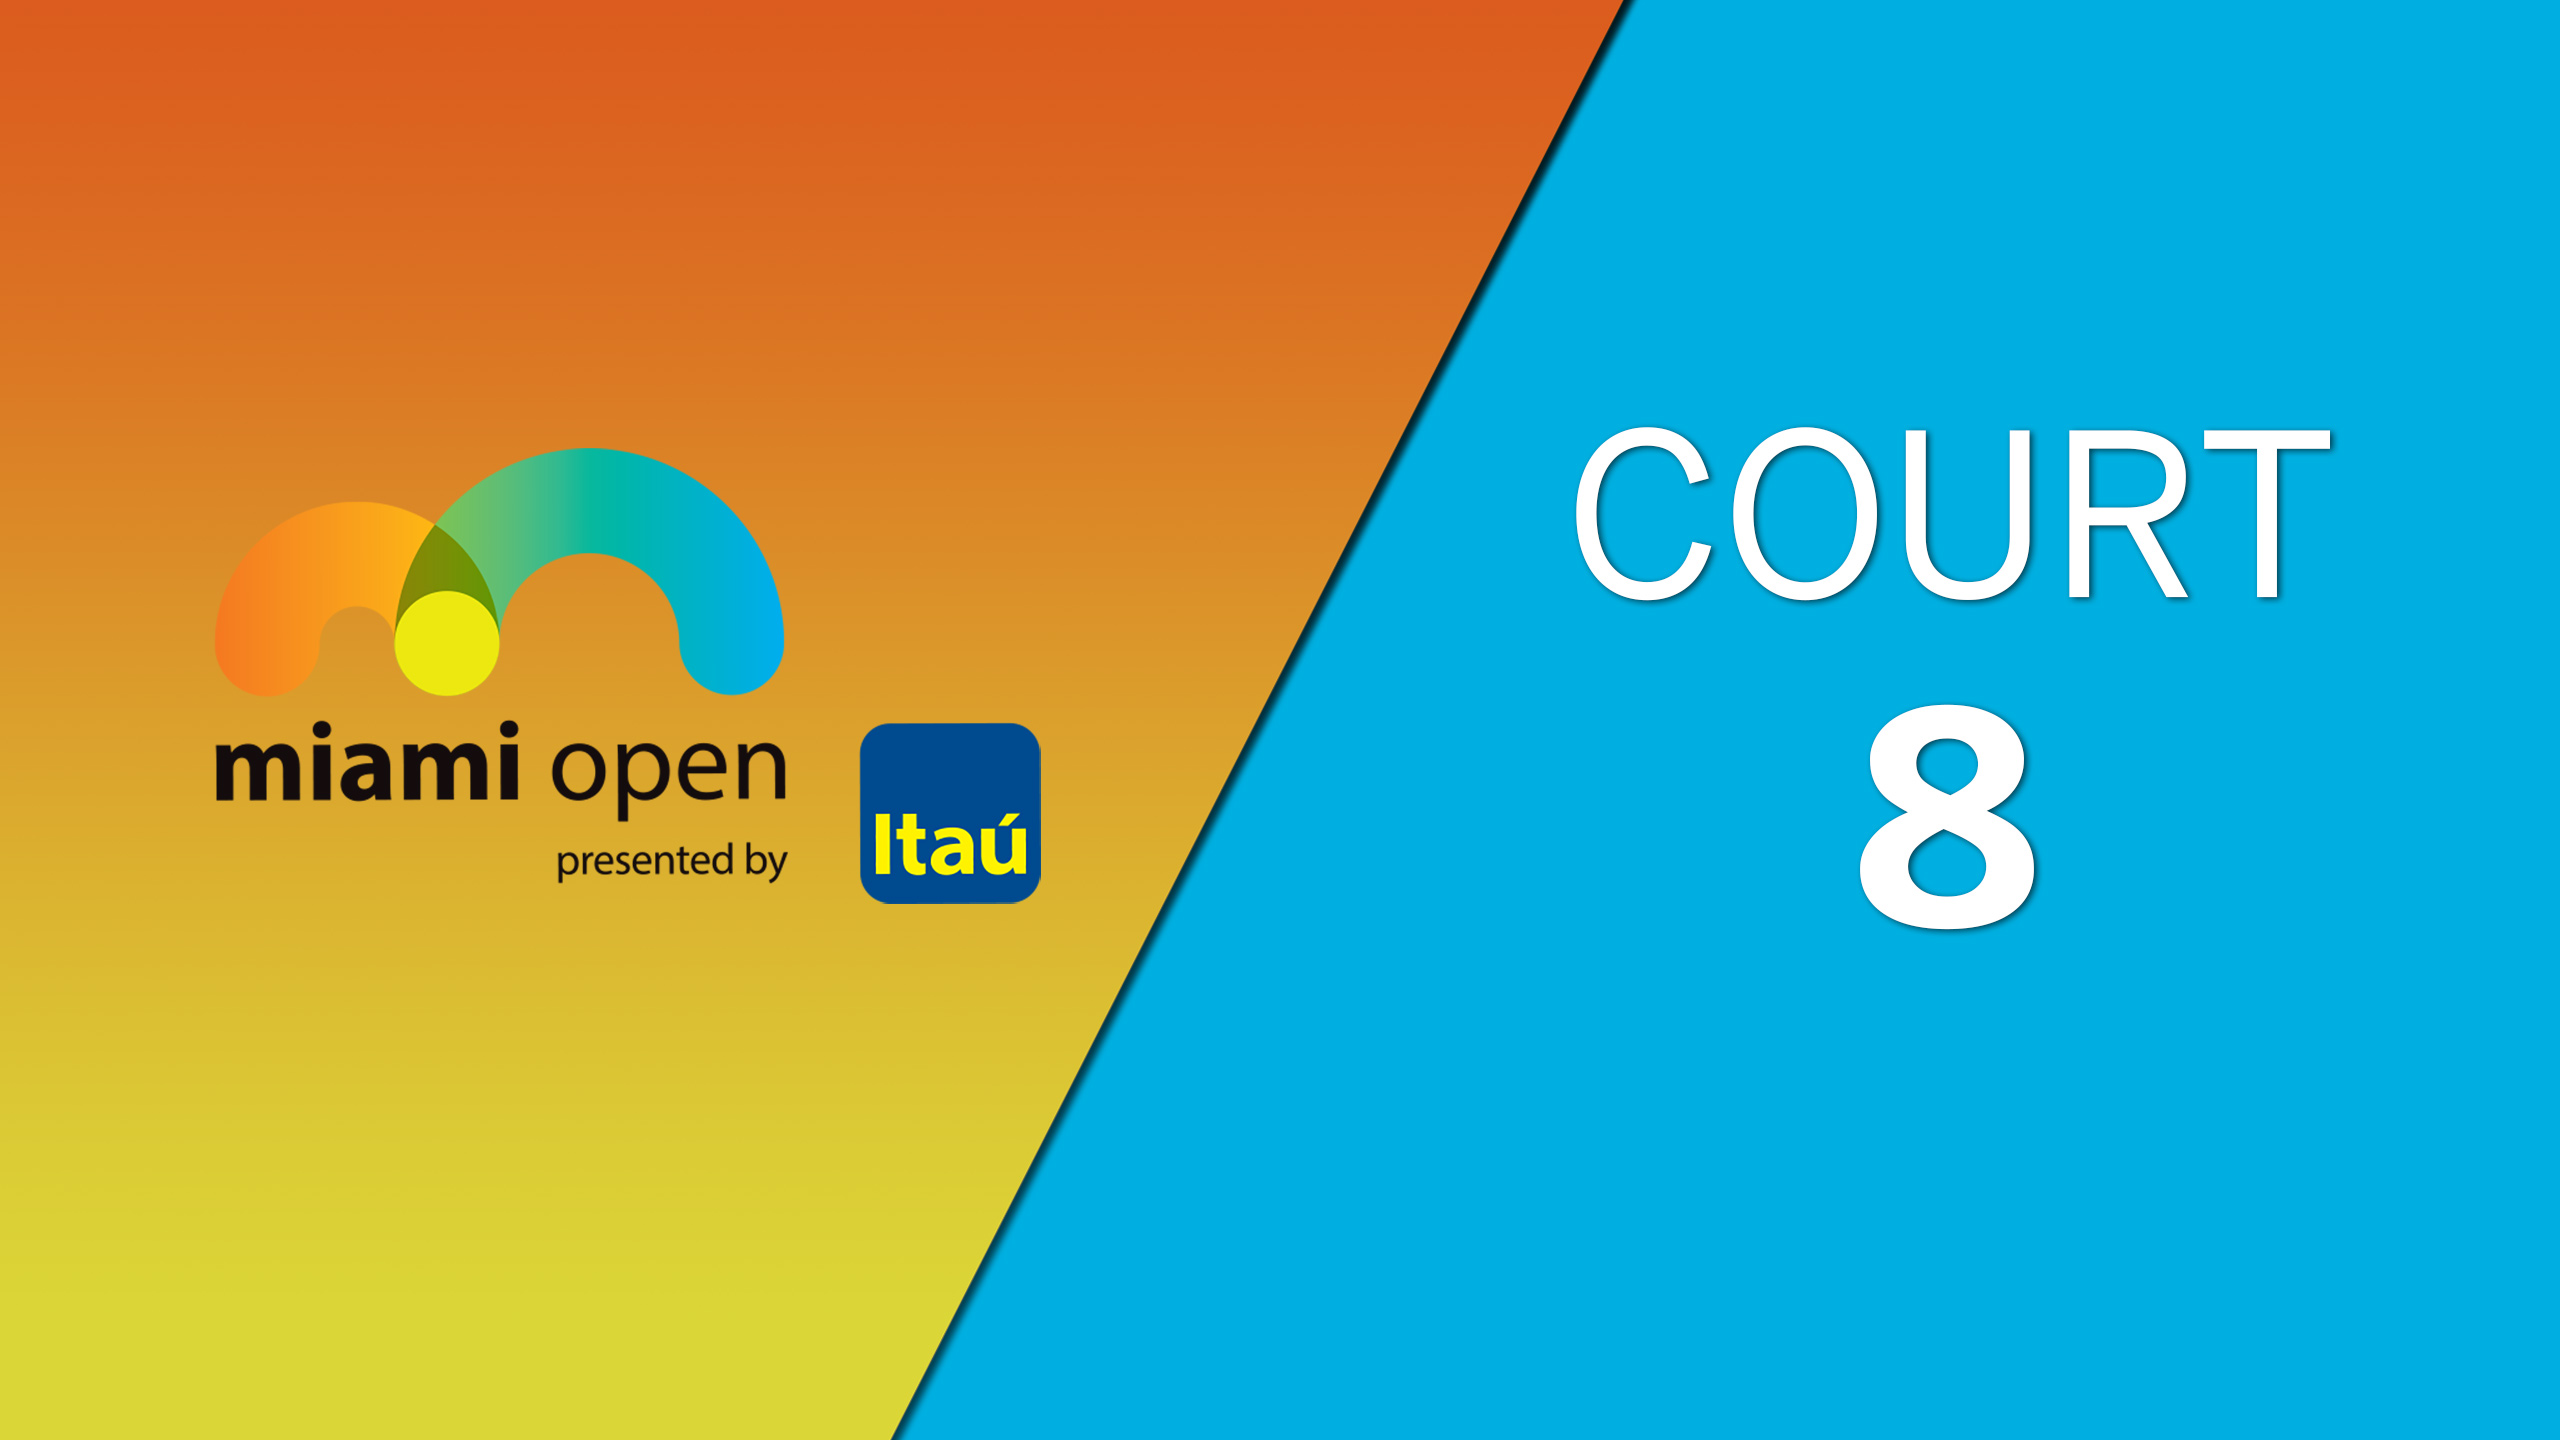 ATP: Court 8 - Miami Open